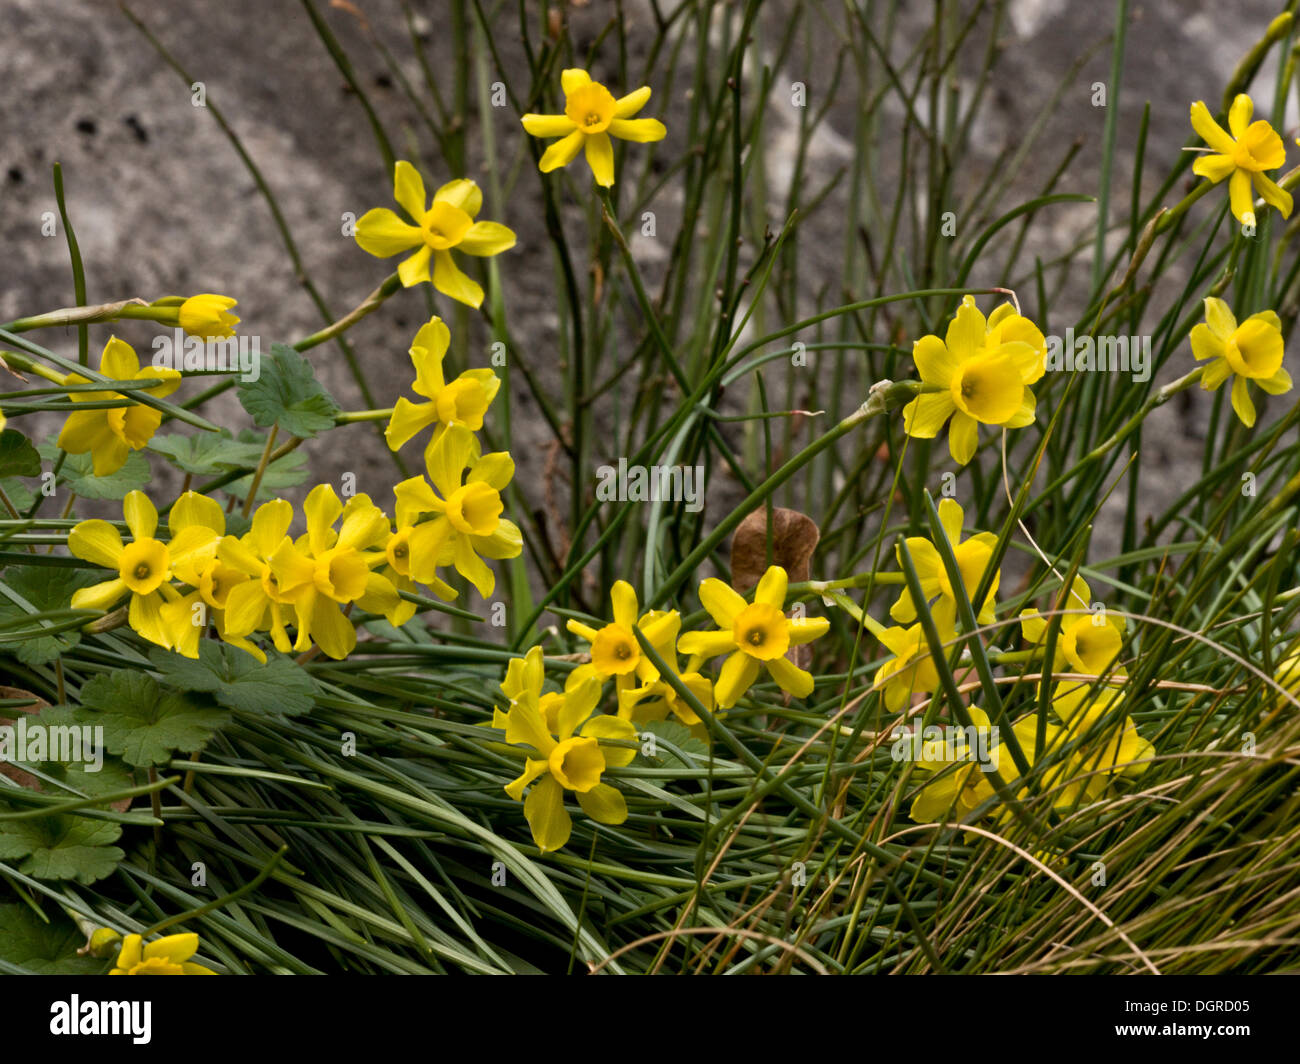 Rush-leaf Jonquils, Narcissus assoanus (formerly N. requienii) wild in the pyrenees, Spain Stock Photo